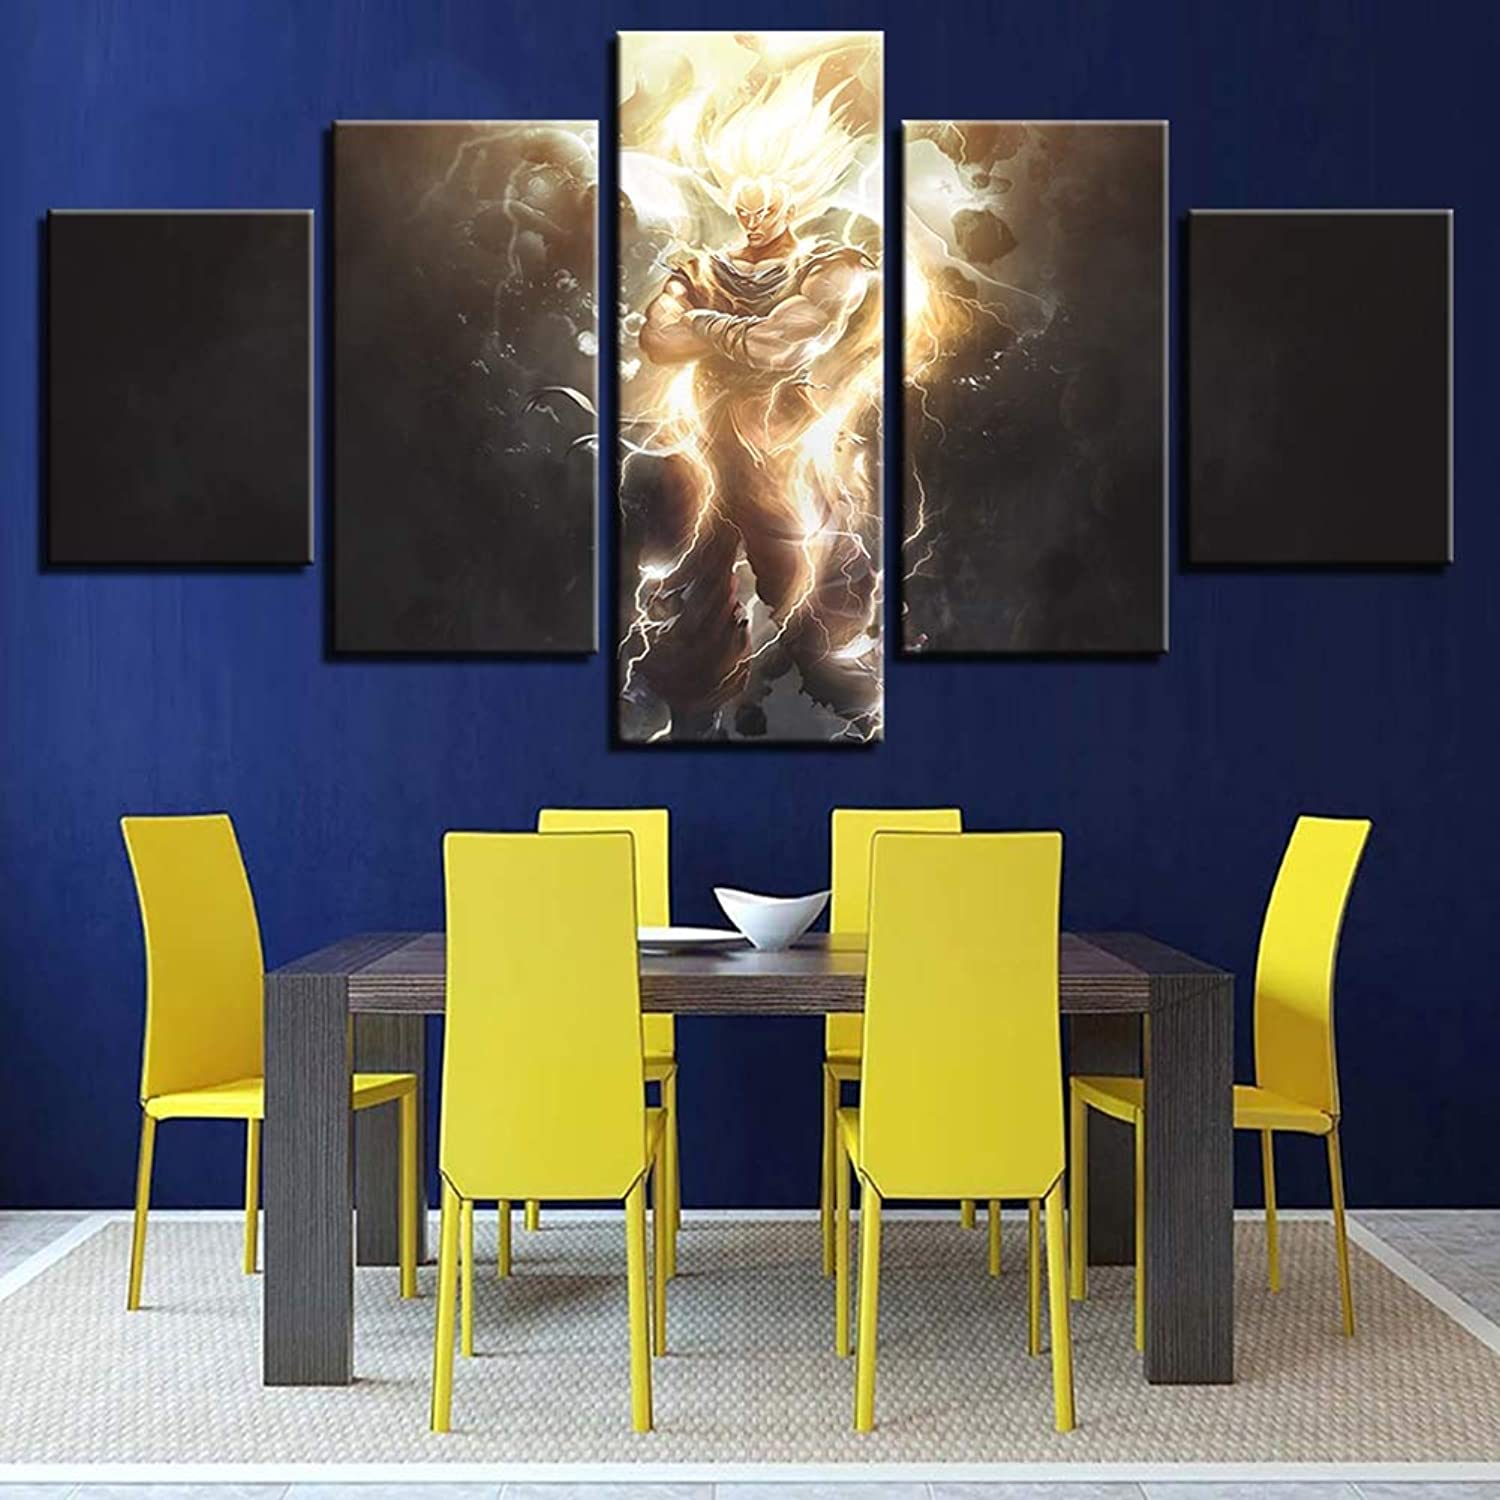 Canvas 5 Pieces Dragon Ball Pictures Wall Art HD Printed Anime Super Saiyan Paintings Poster for Living Room Home Decor,B,10X15X210X20X210X25X1